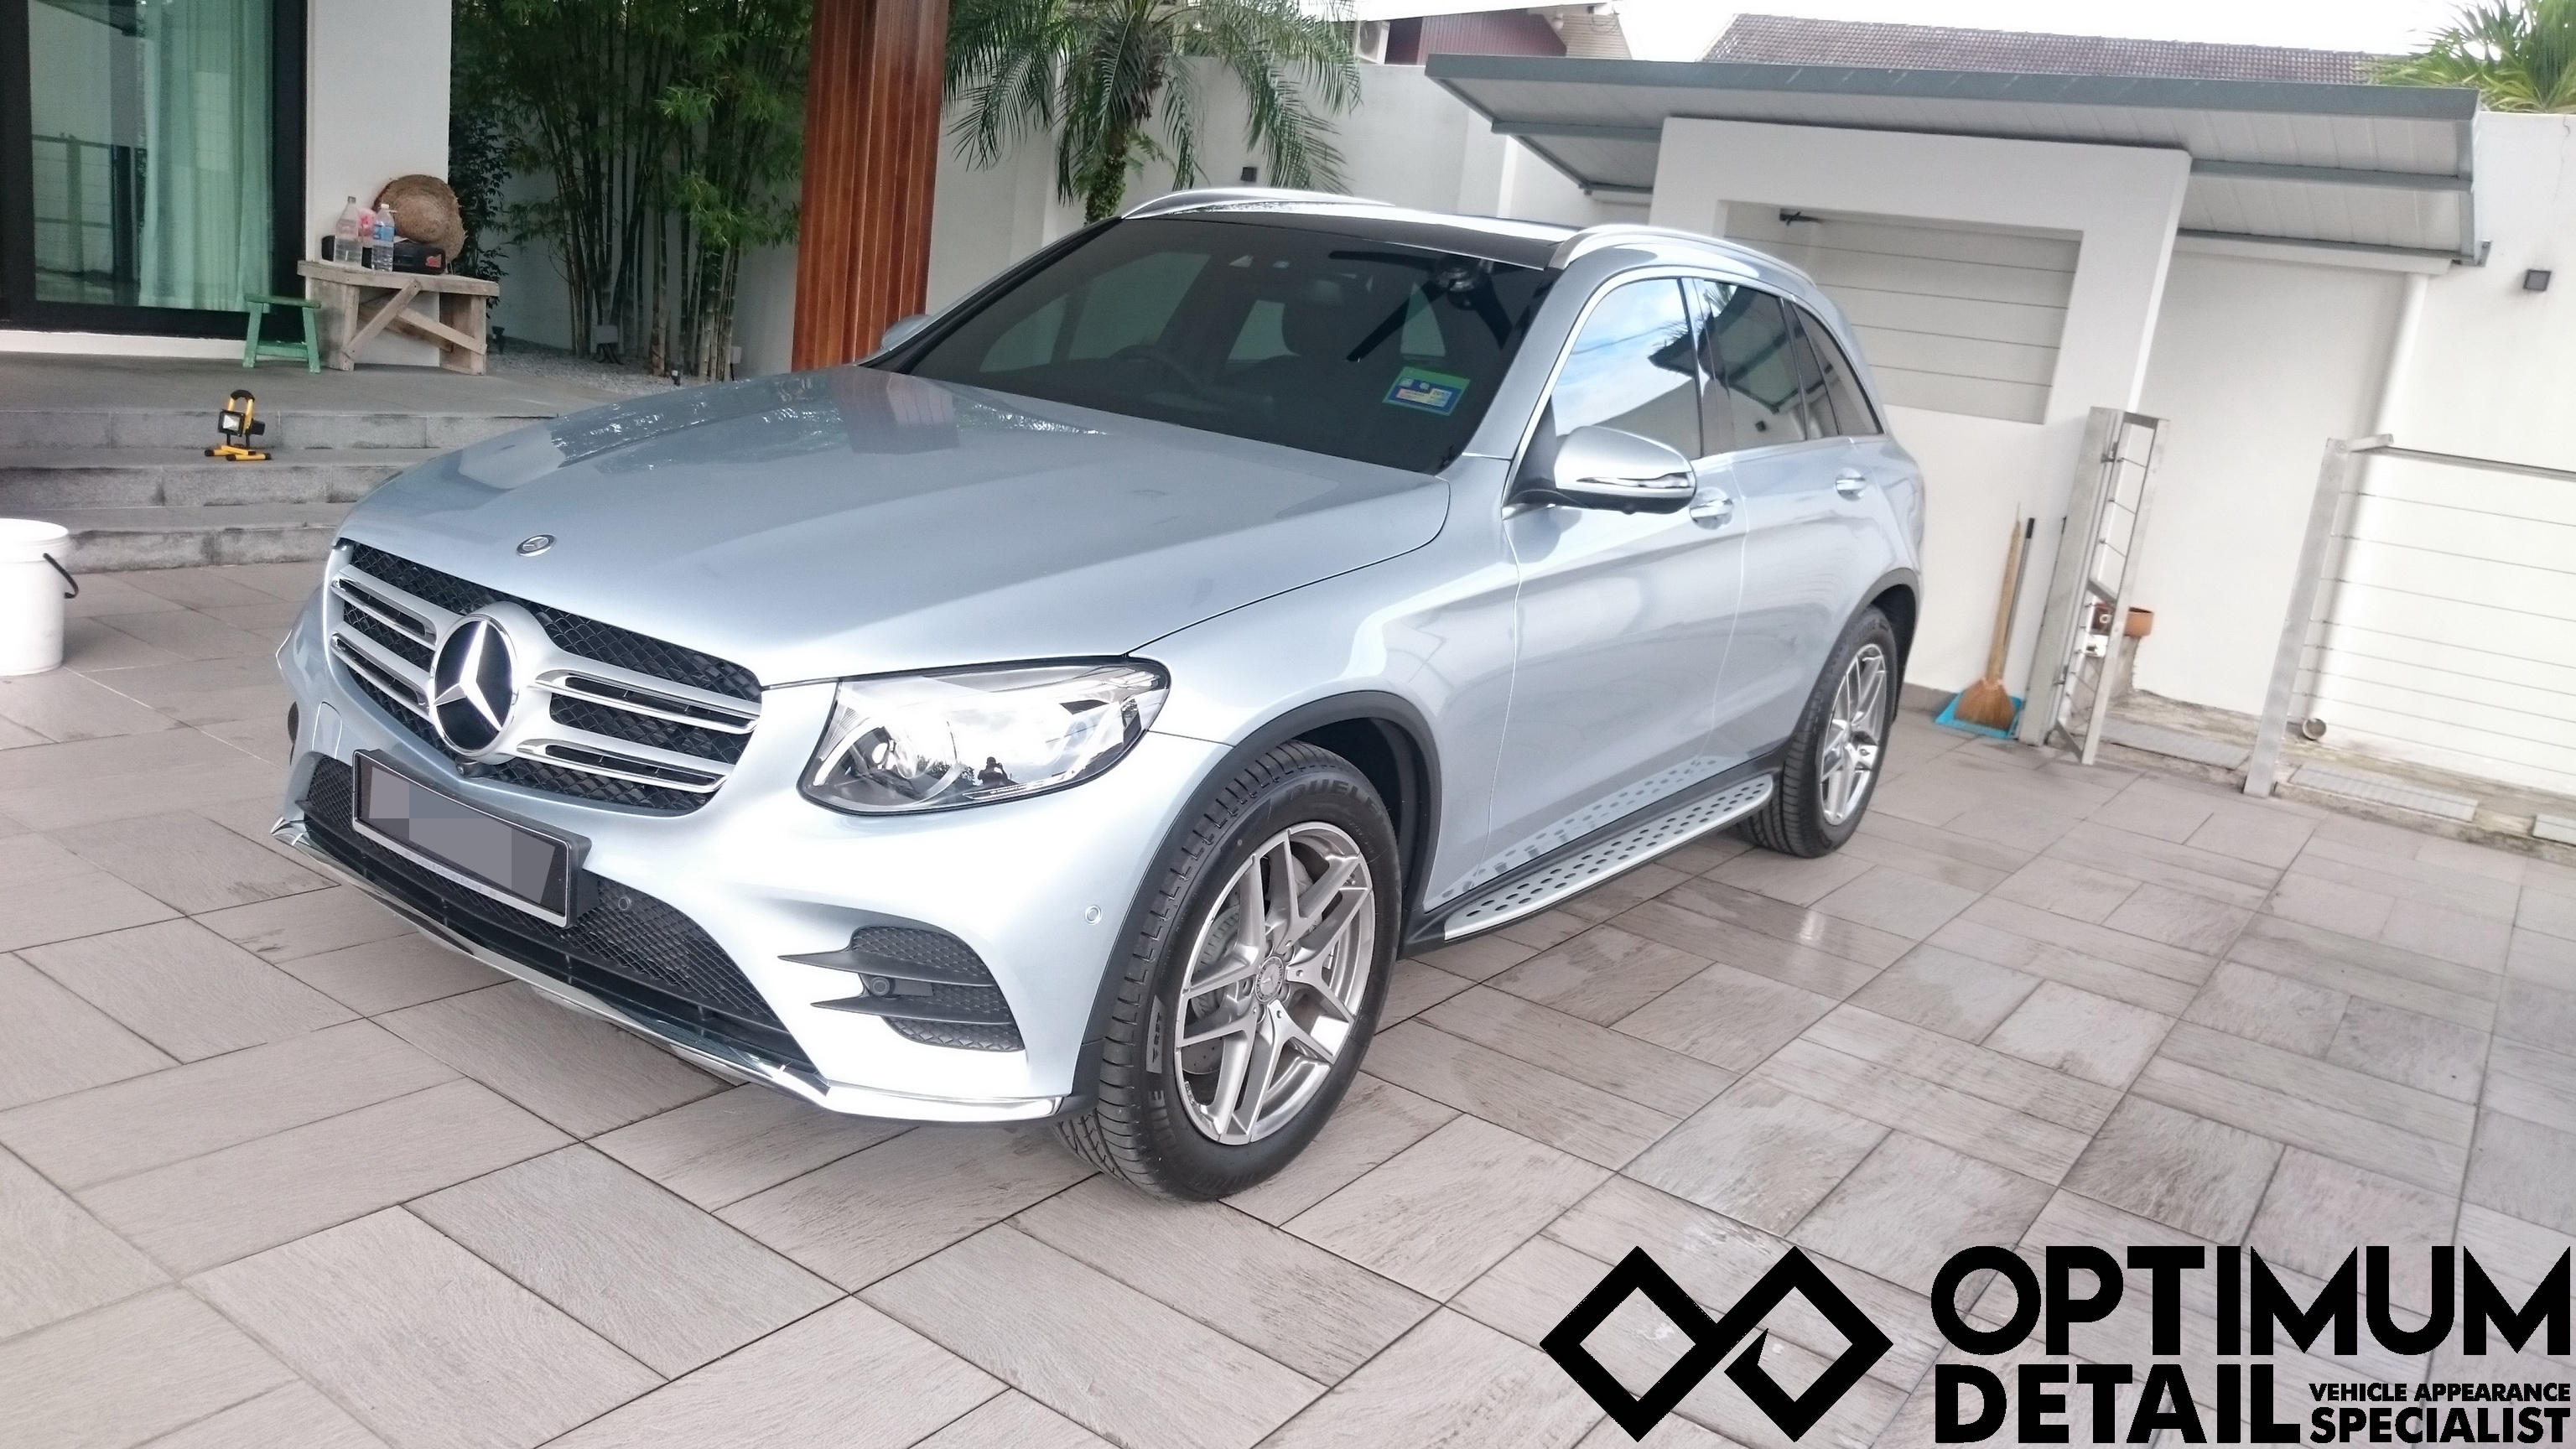 Car sticker design ipoh - We Have With Us A Mercedes Glc Brand New From The Dealership The Owner Of The Car Brought The Car Back From The Dealership And Parked It Till We Got Here A